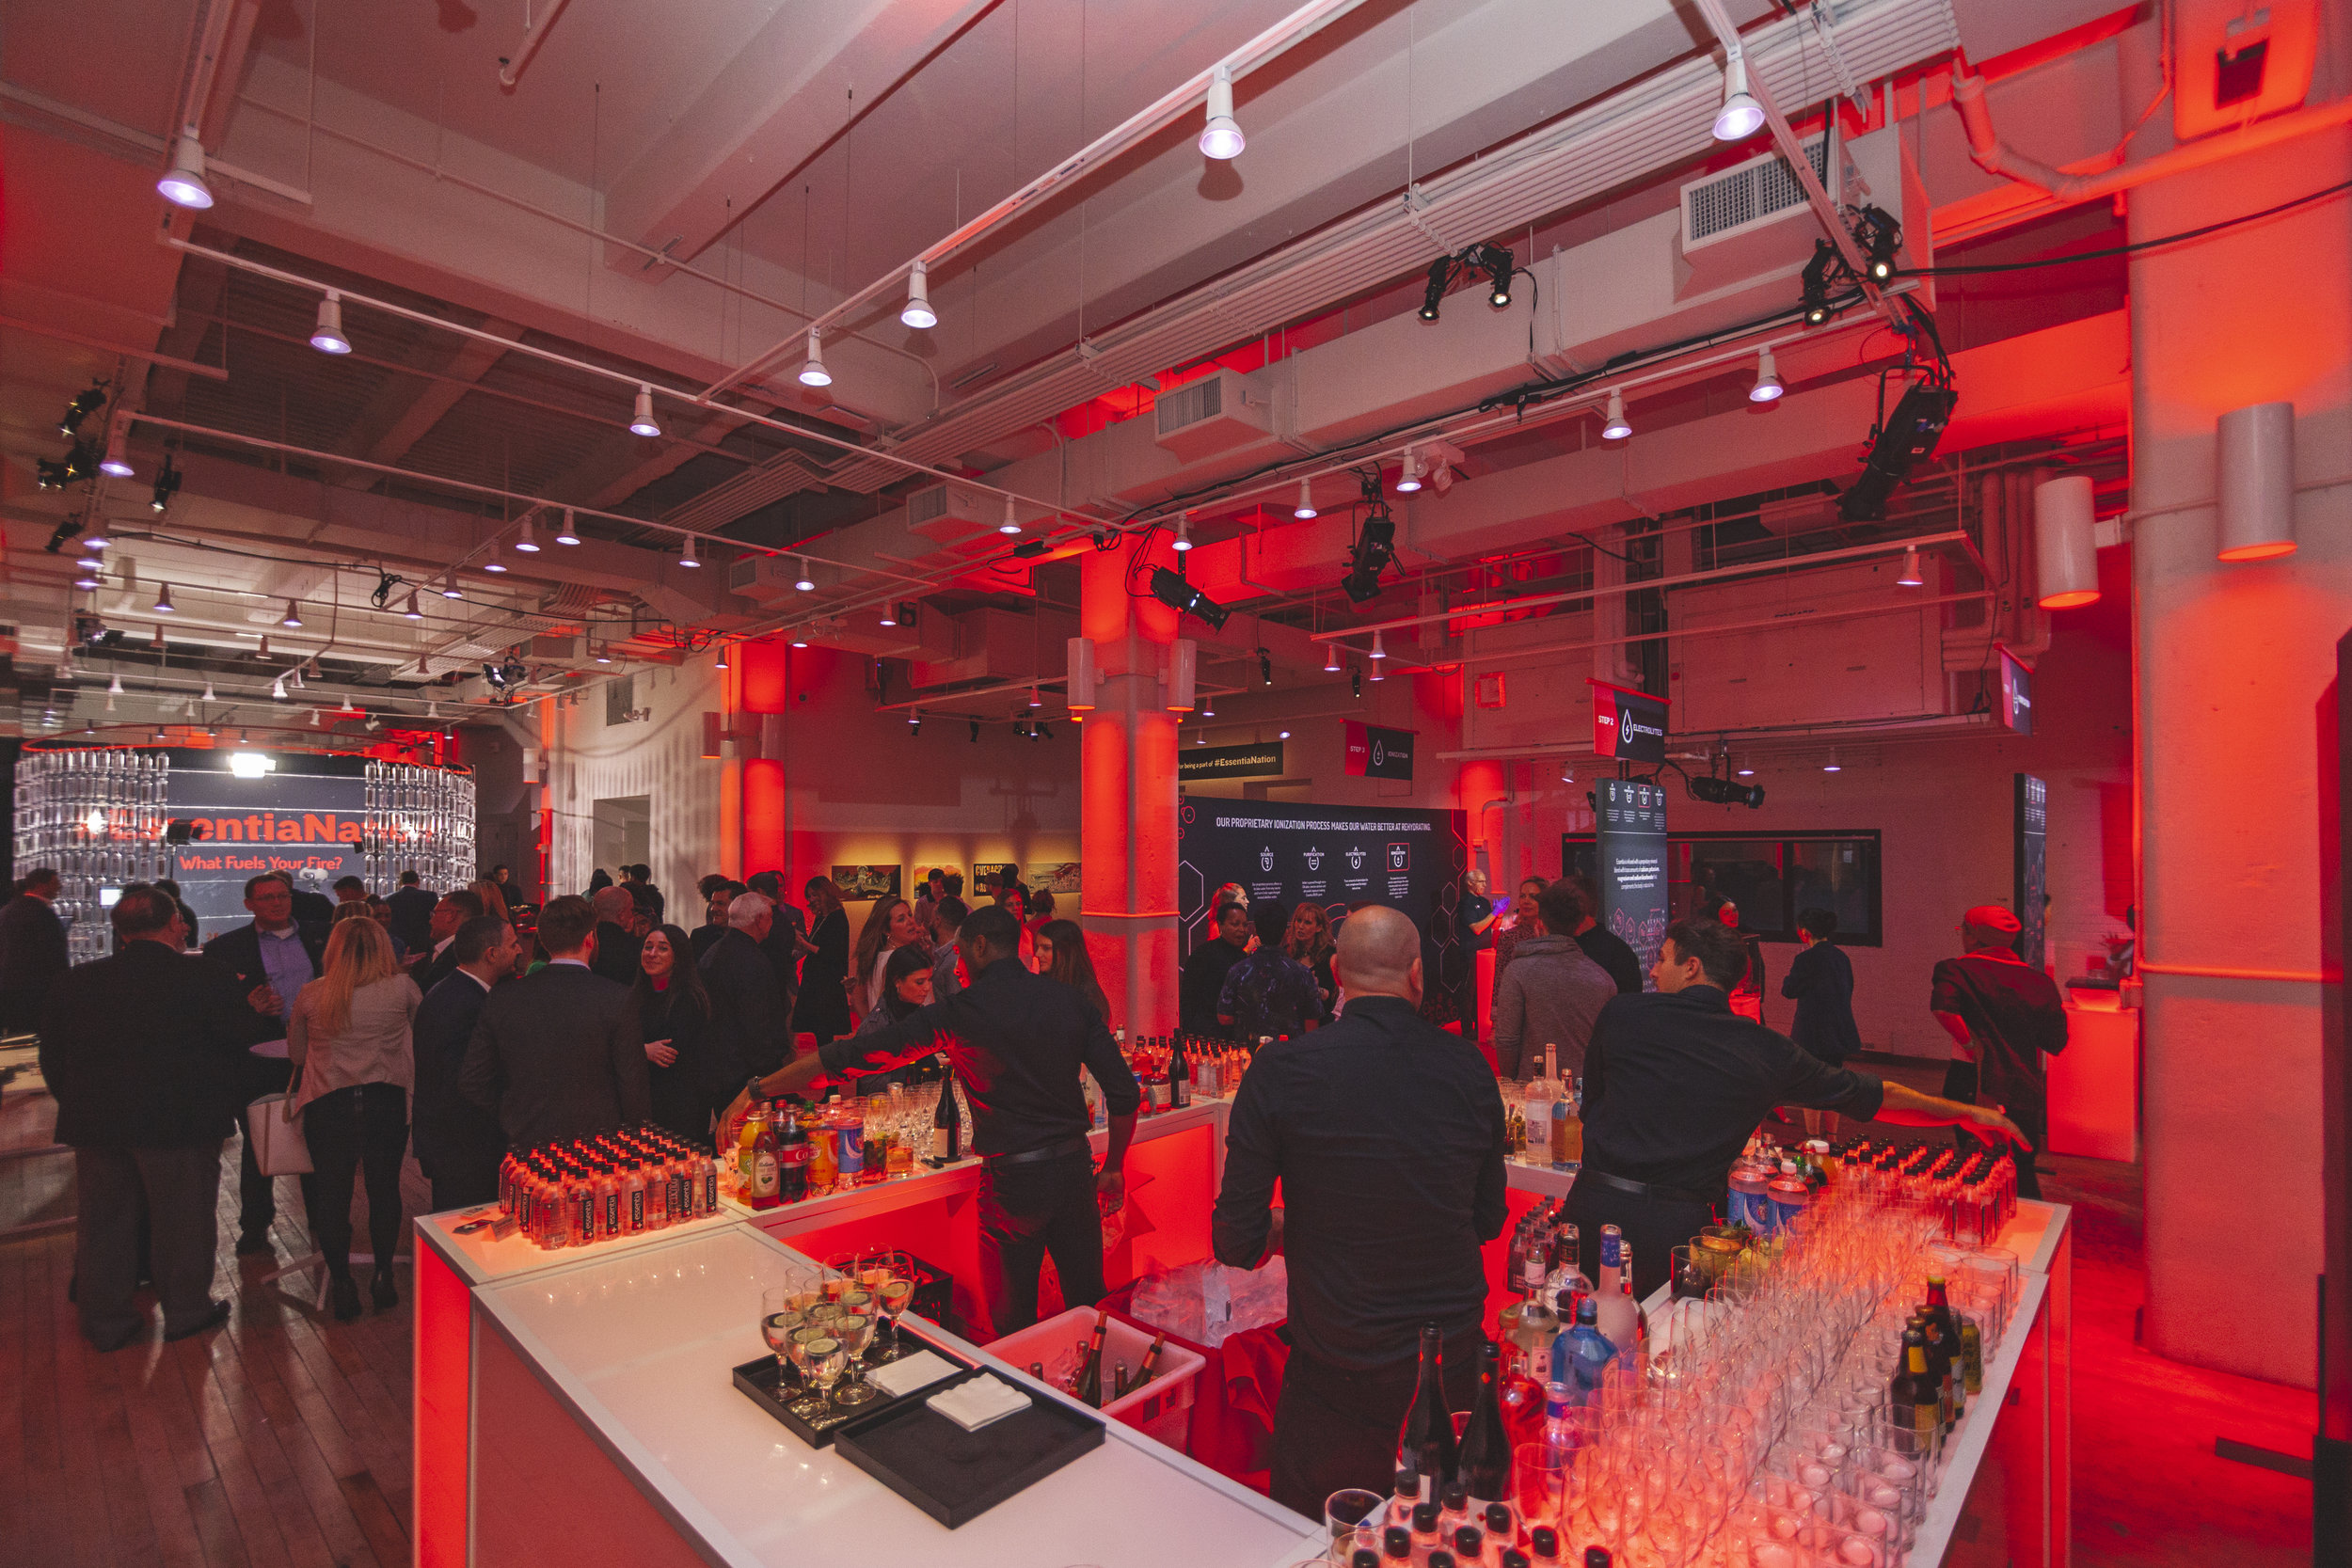 CUSTOM FABRICATION - From a 360° photo booth to a full elevator bar, West Edge above Chelsea Market was fully transformed in just a few hours.